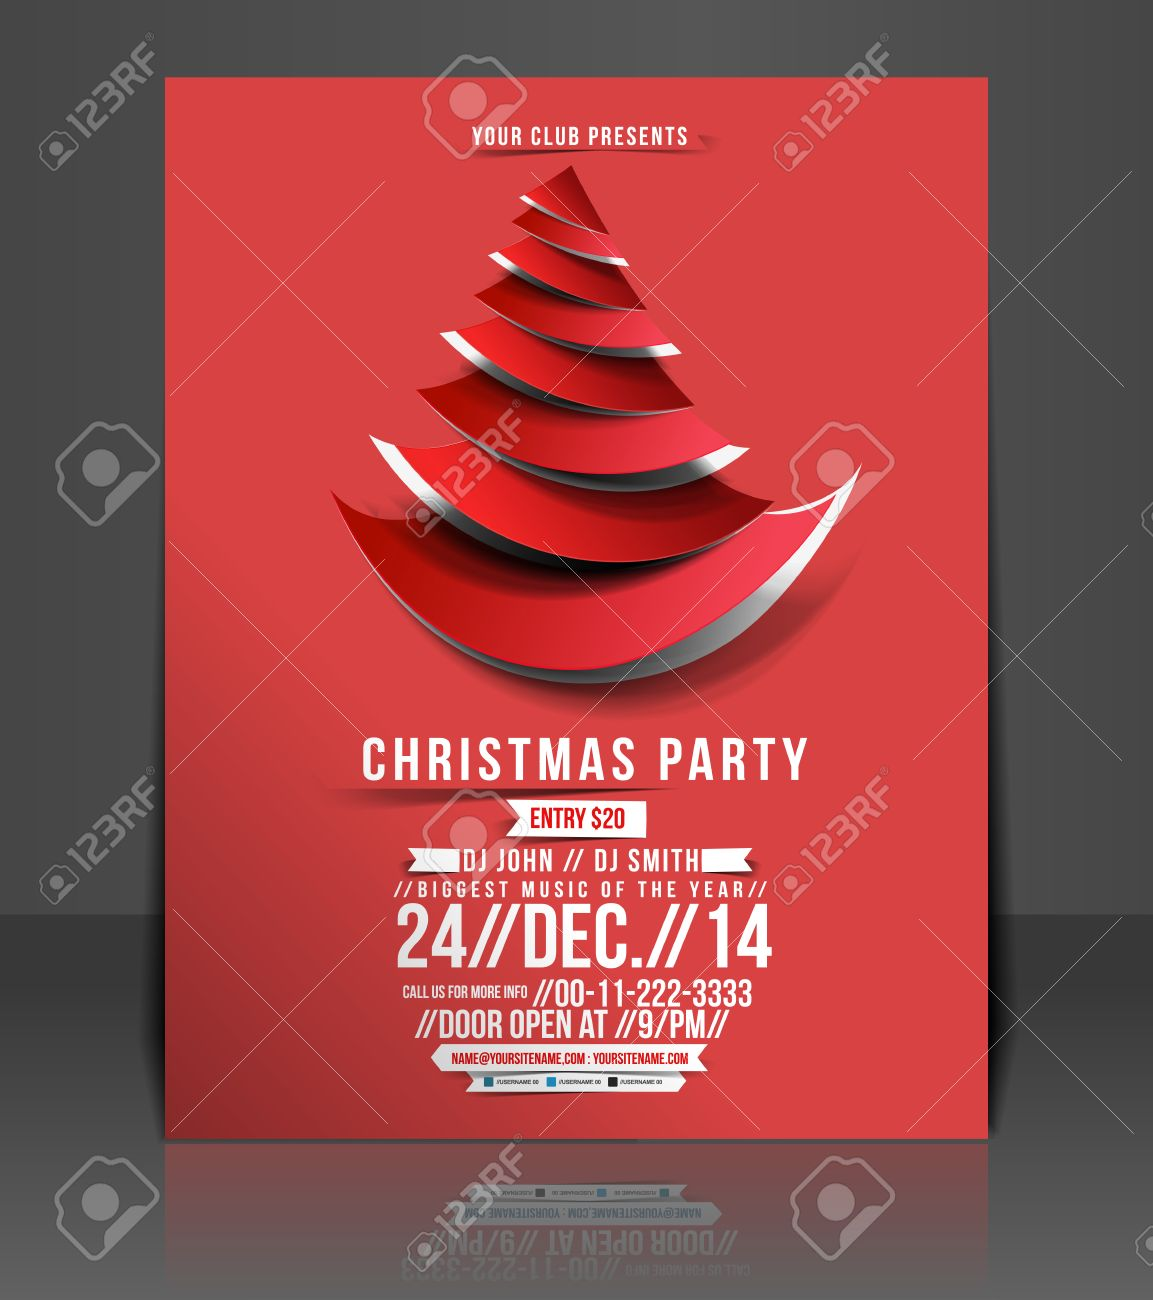 Christmas Party Flyer Template.Christmas Party Flyer Poster Template